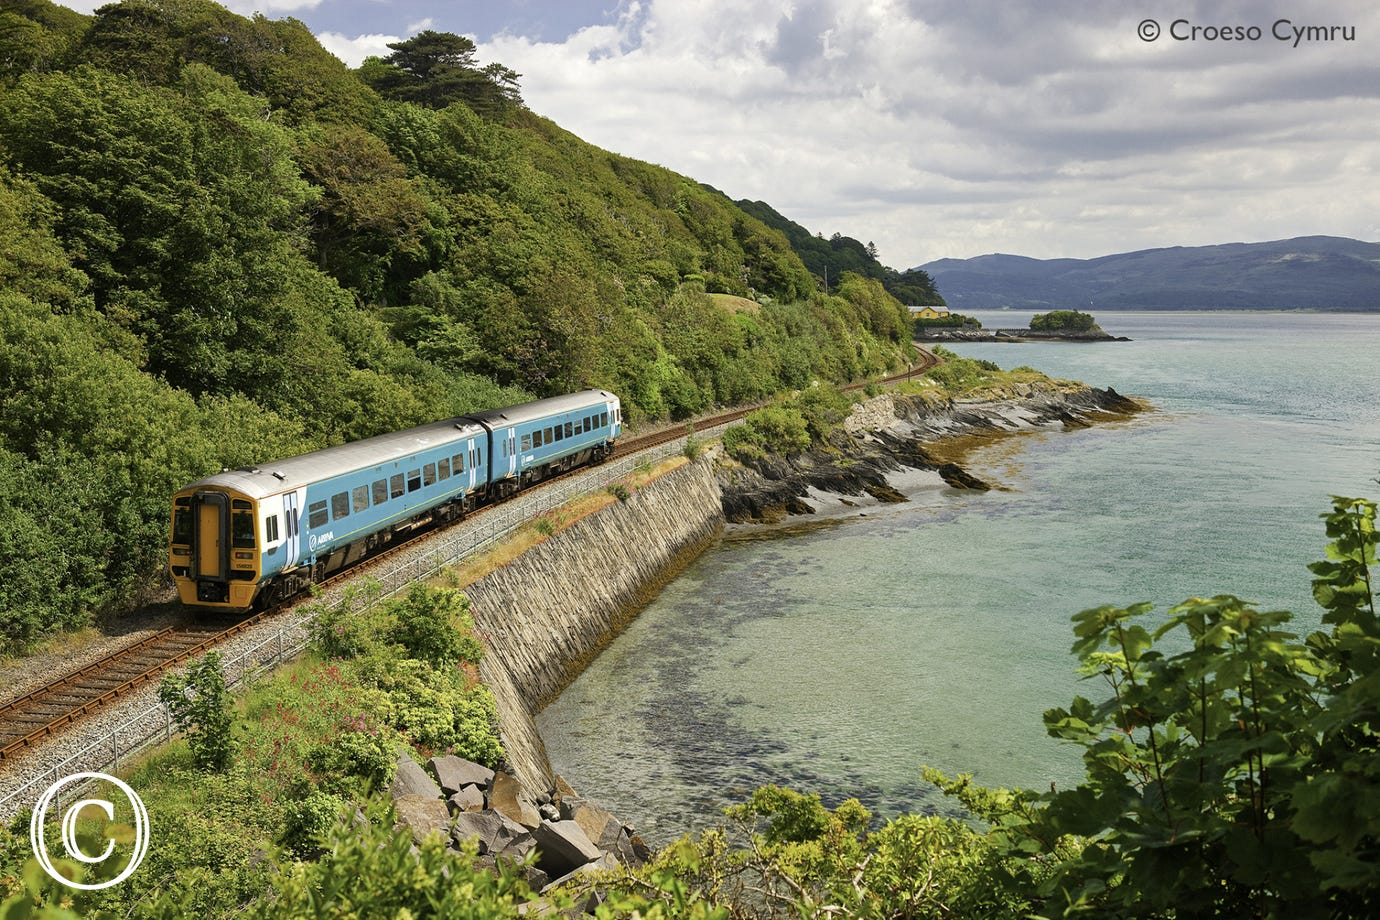 One of the most scenic railway lines in the world from Machynlleth to Pwllheli